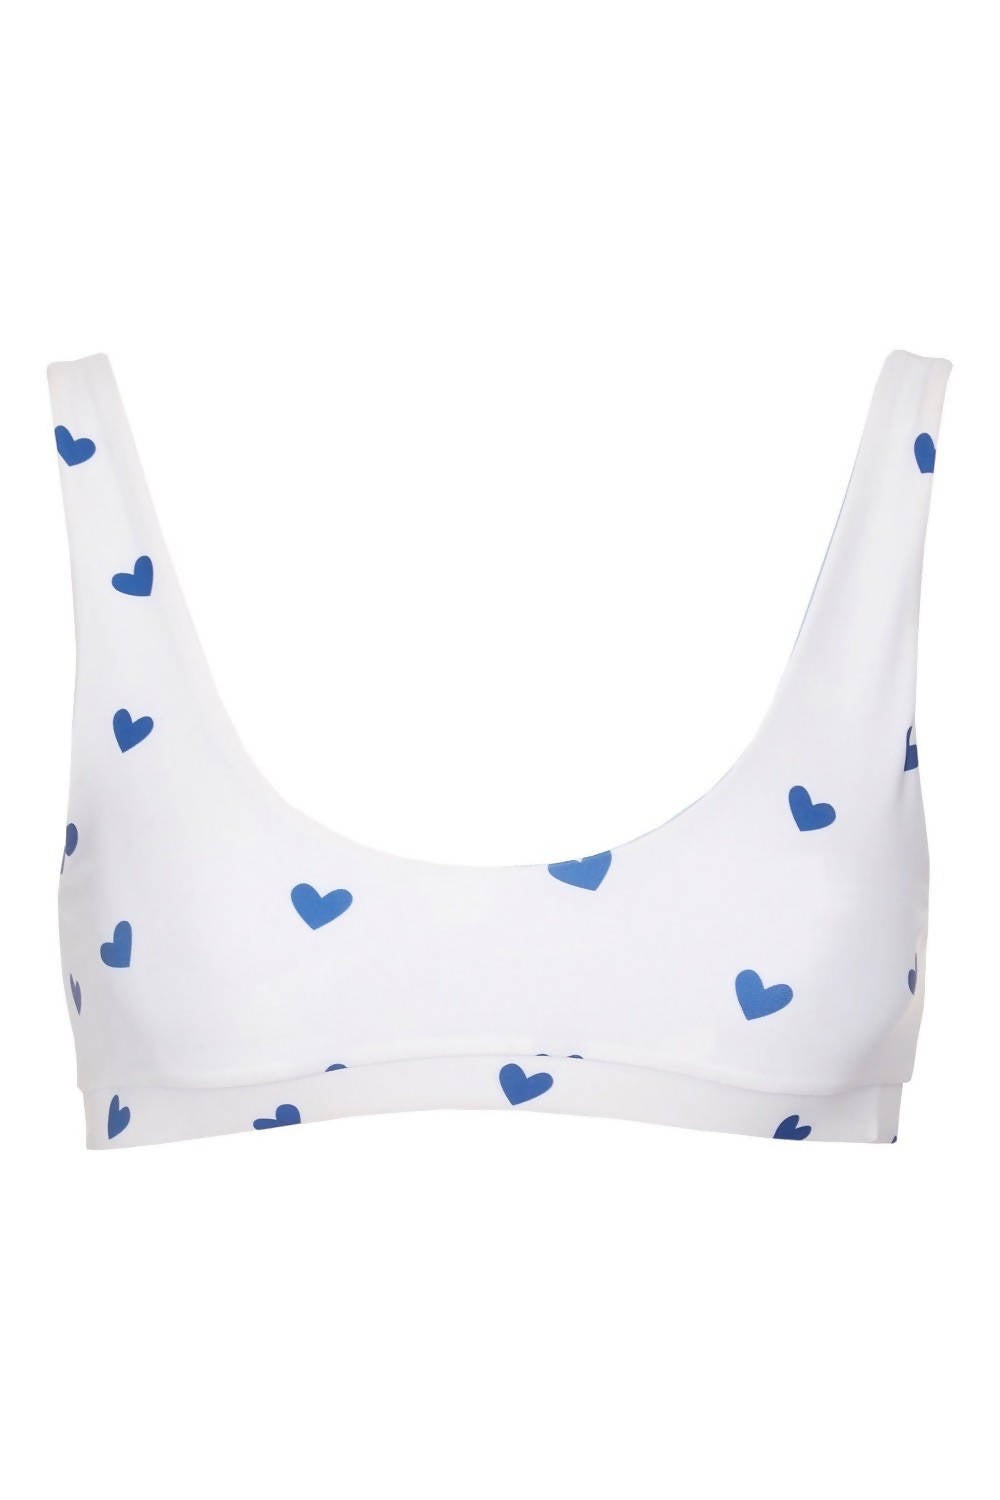 SASHA TOP - NAVY / WHITE HEARTS